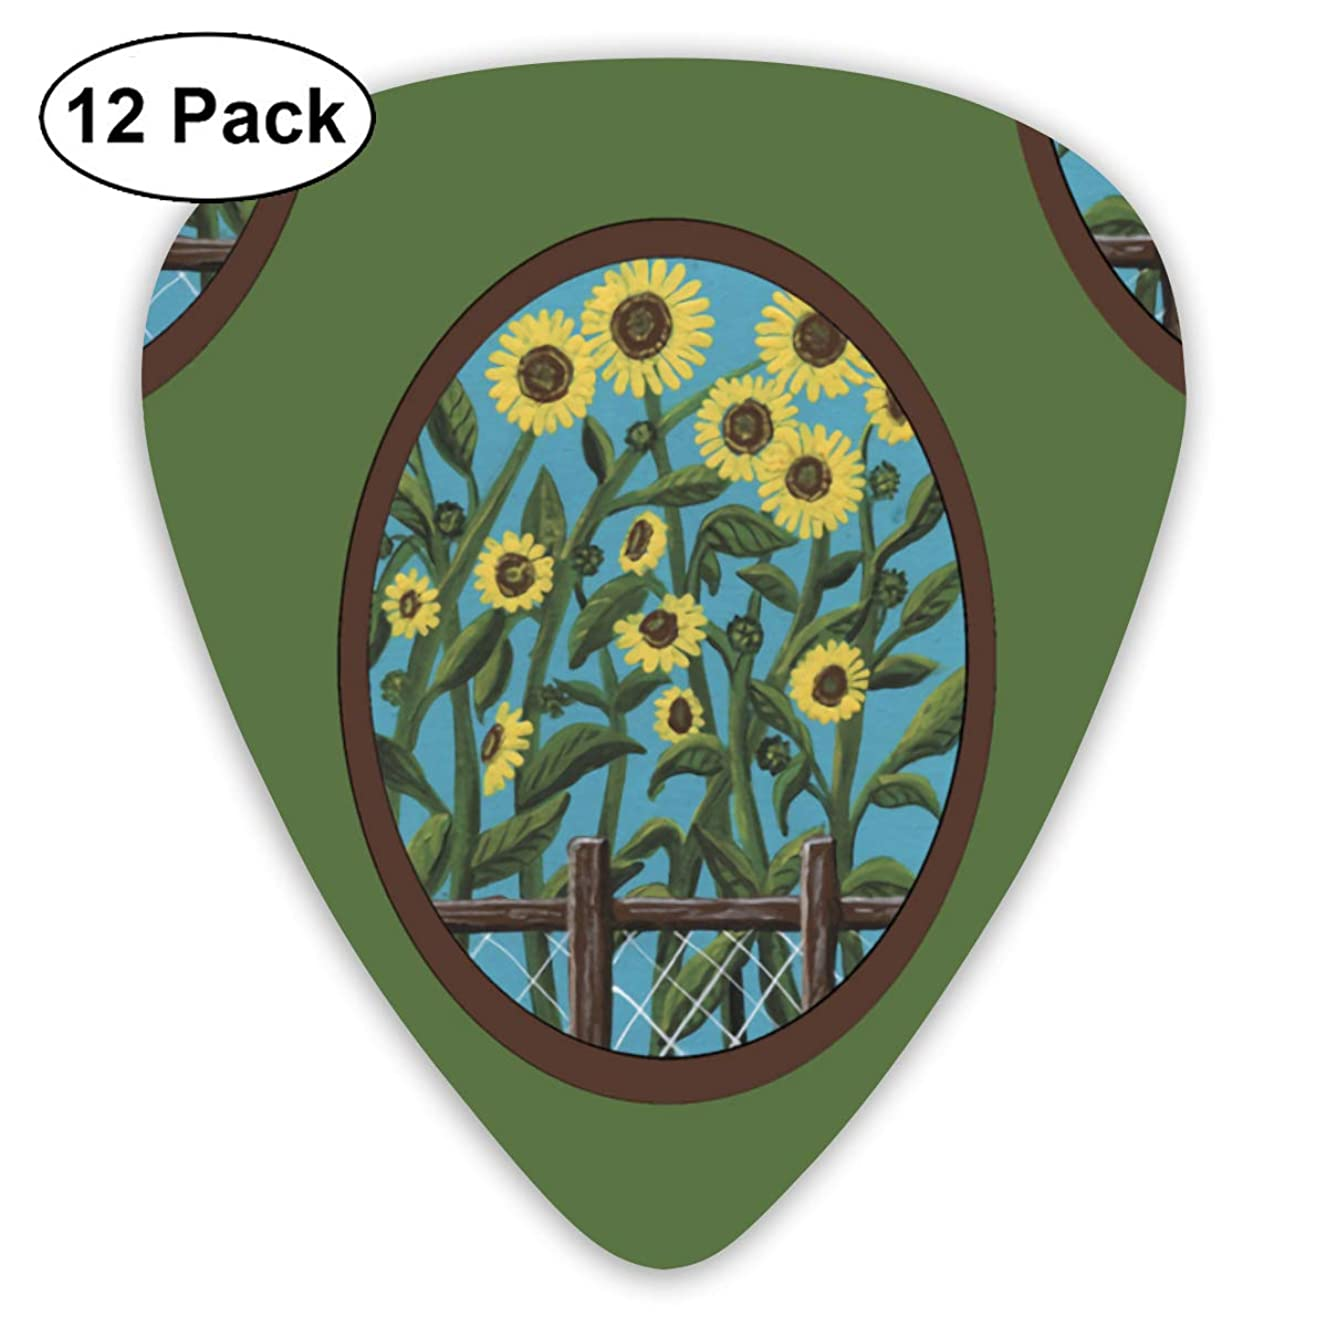 Sunflower Ovals Green Bendy Ultra Thin 0.46 Med 0.73 Thick 0.96mm 4 Pieces Each Base Prime Plastic Jazz Mandolin Bass Ukelele Guitar Pick Plectrum Display